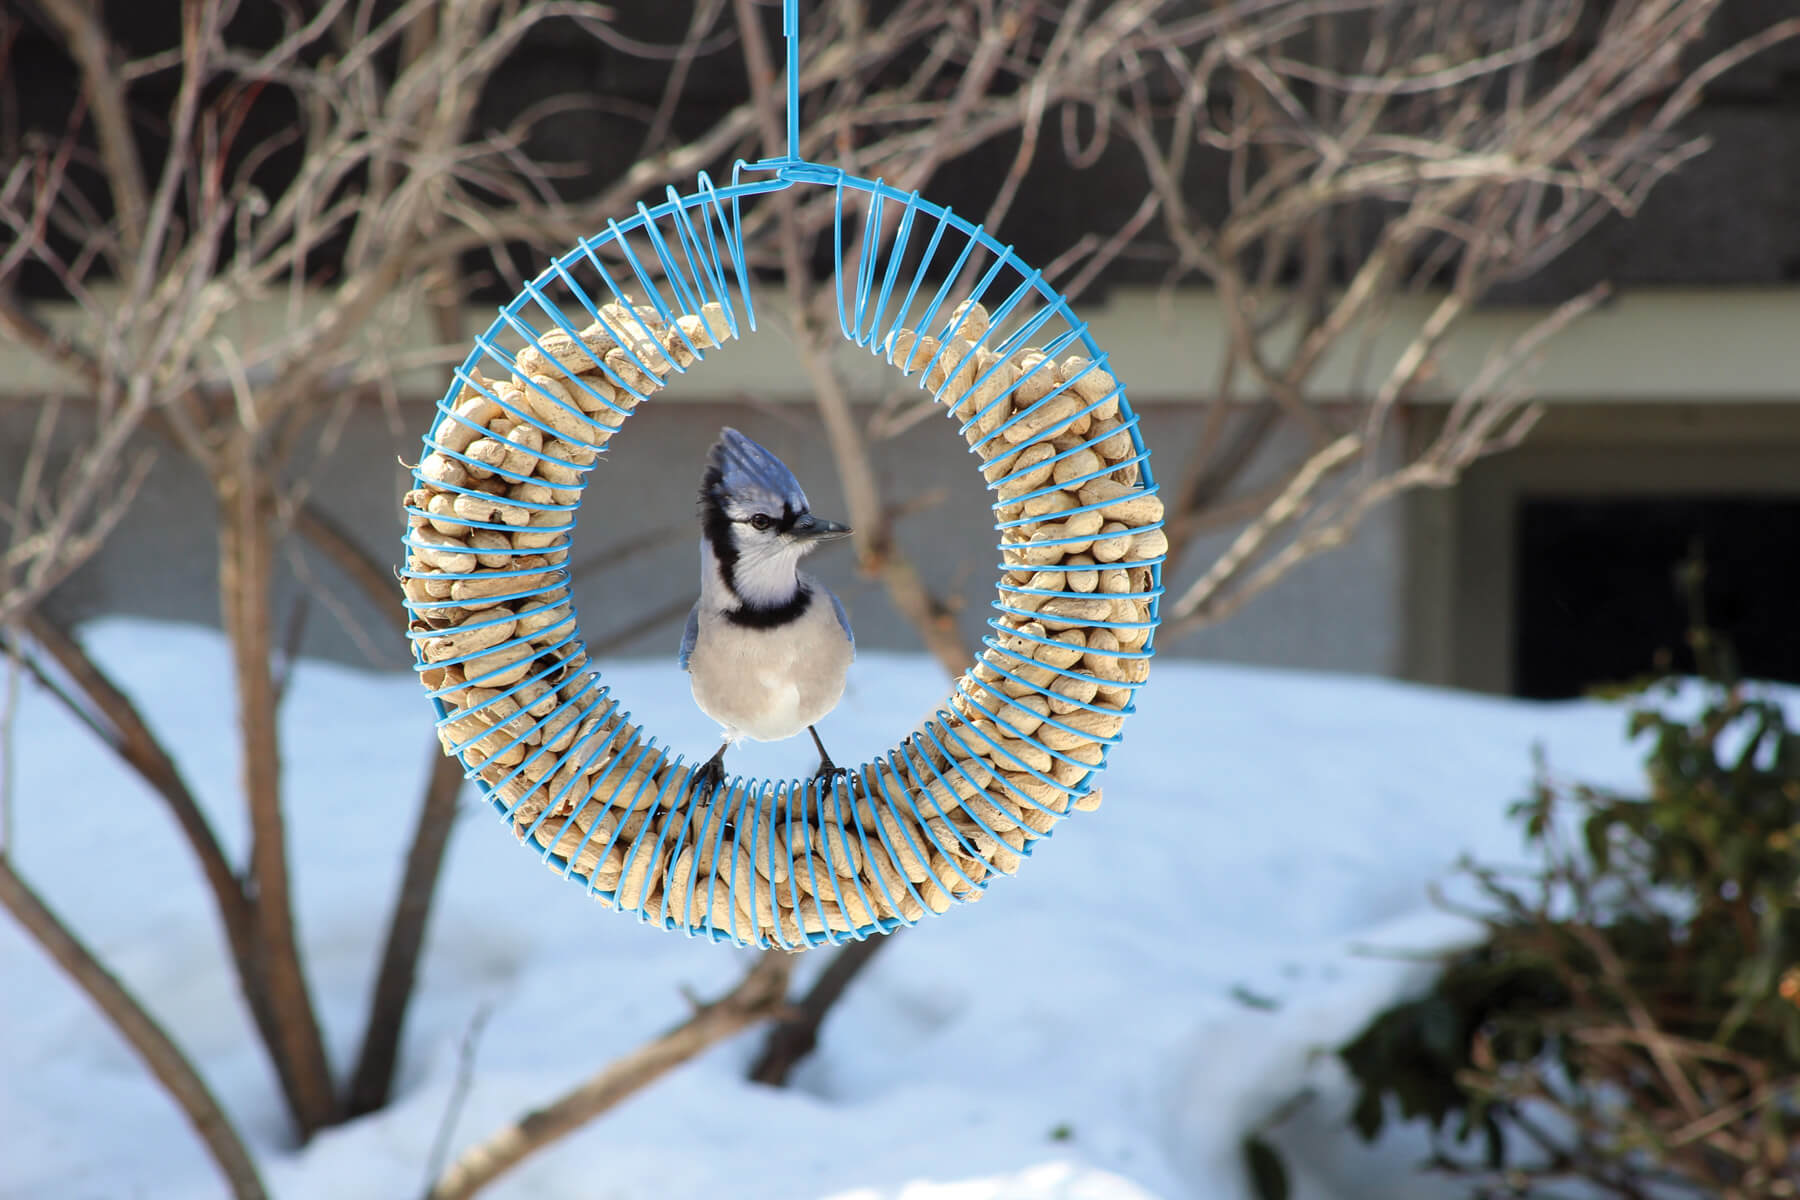 10765 Pinebush Blue Wreath Peanut Feeder Blue Jay